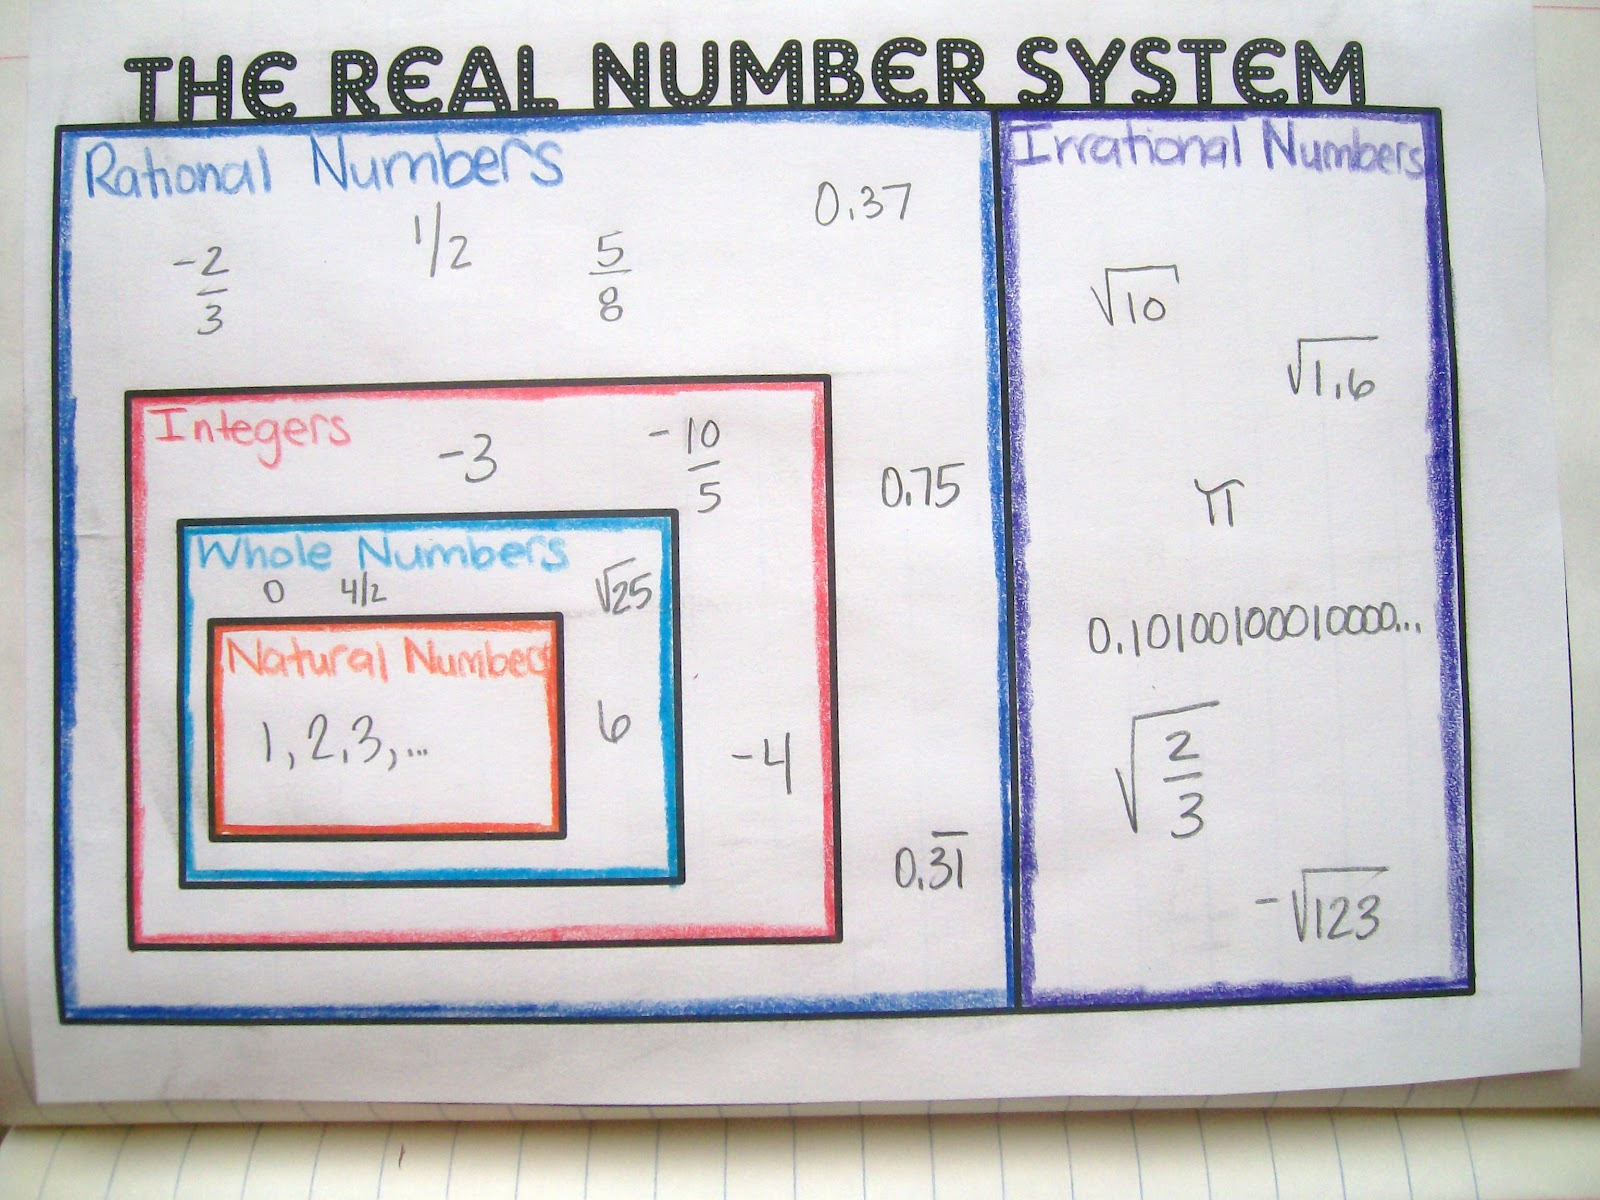 number systems Unit one number systems sections 11 - 12 introduction to number systems through out history civilizations have keep records using their own number systems.